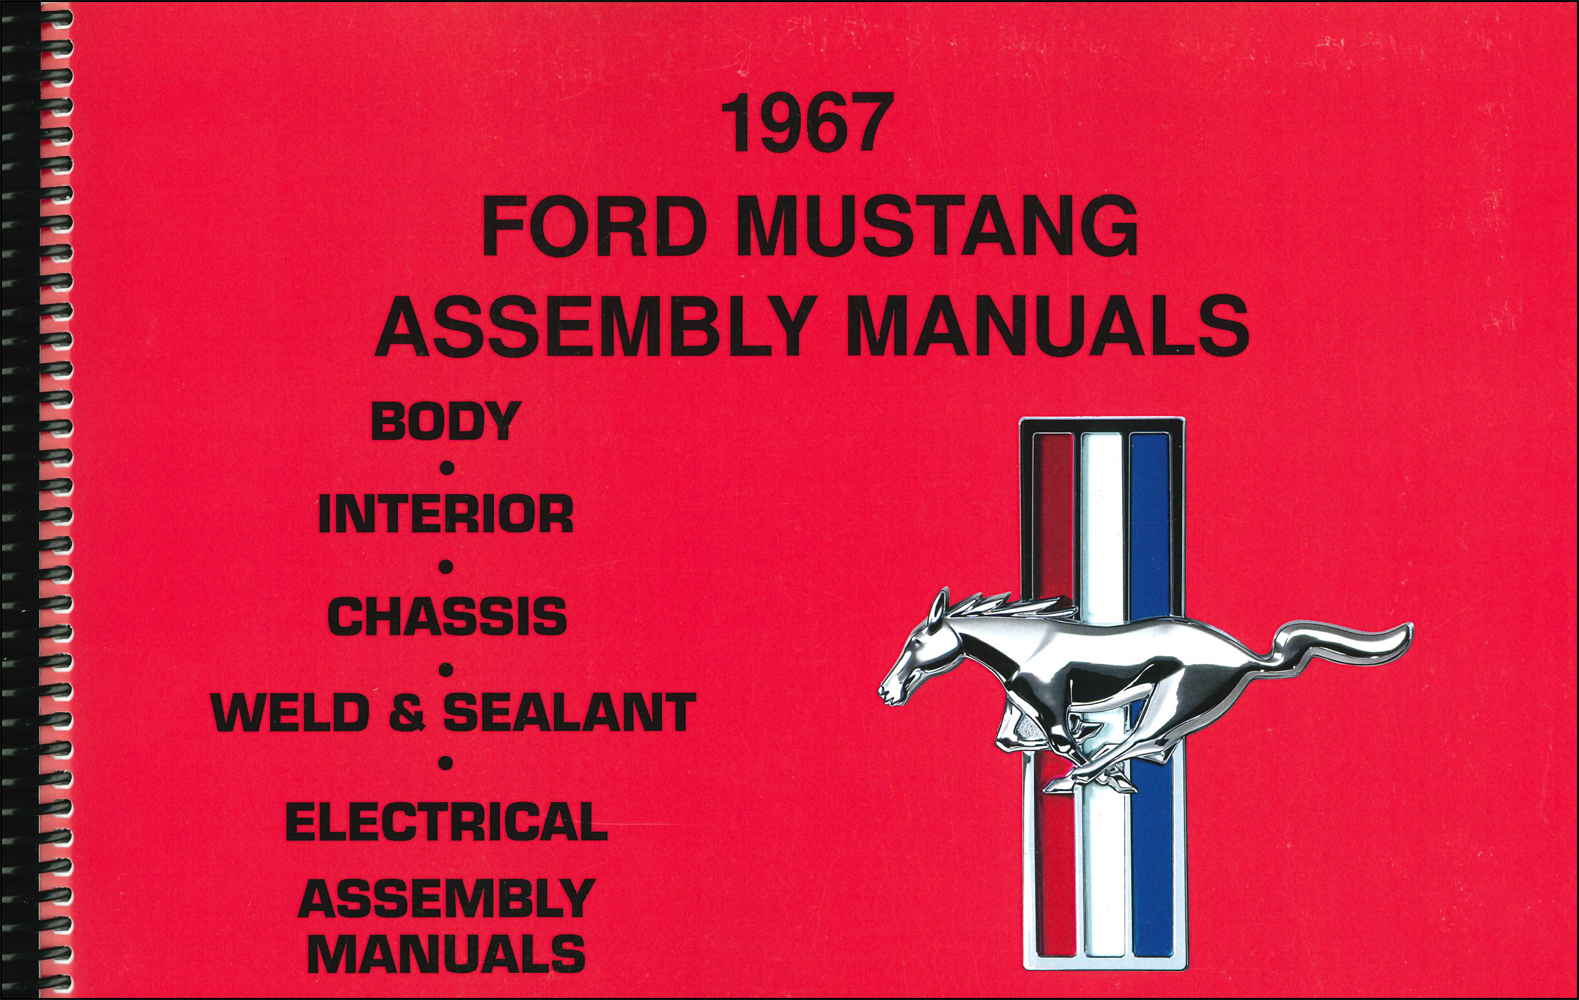 1967 Ford Mustang Assembly Manual Reprint set of 5 Books in 1 Volume